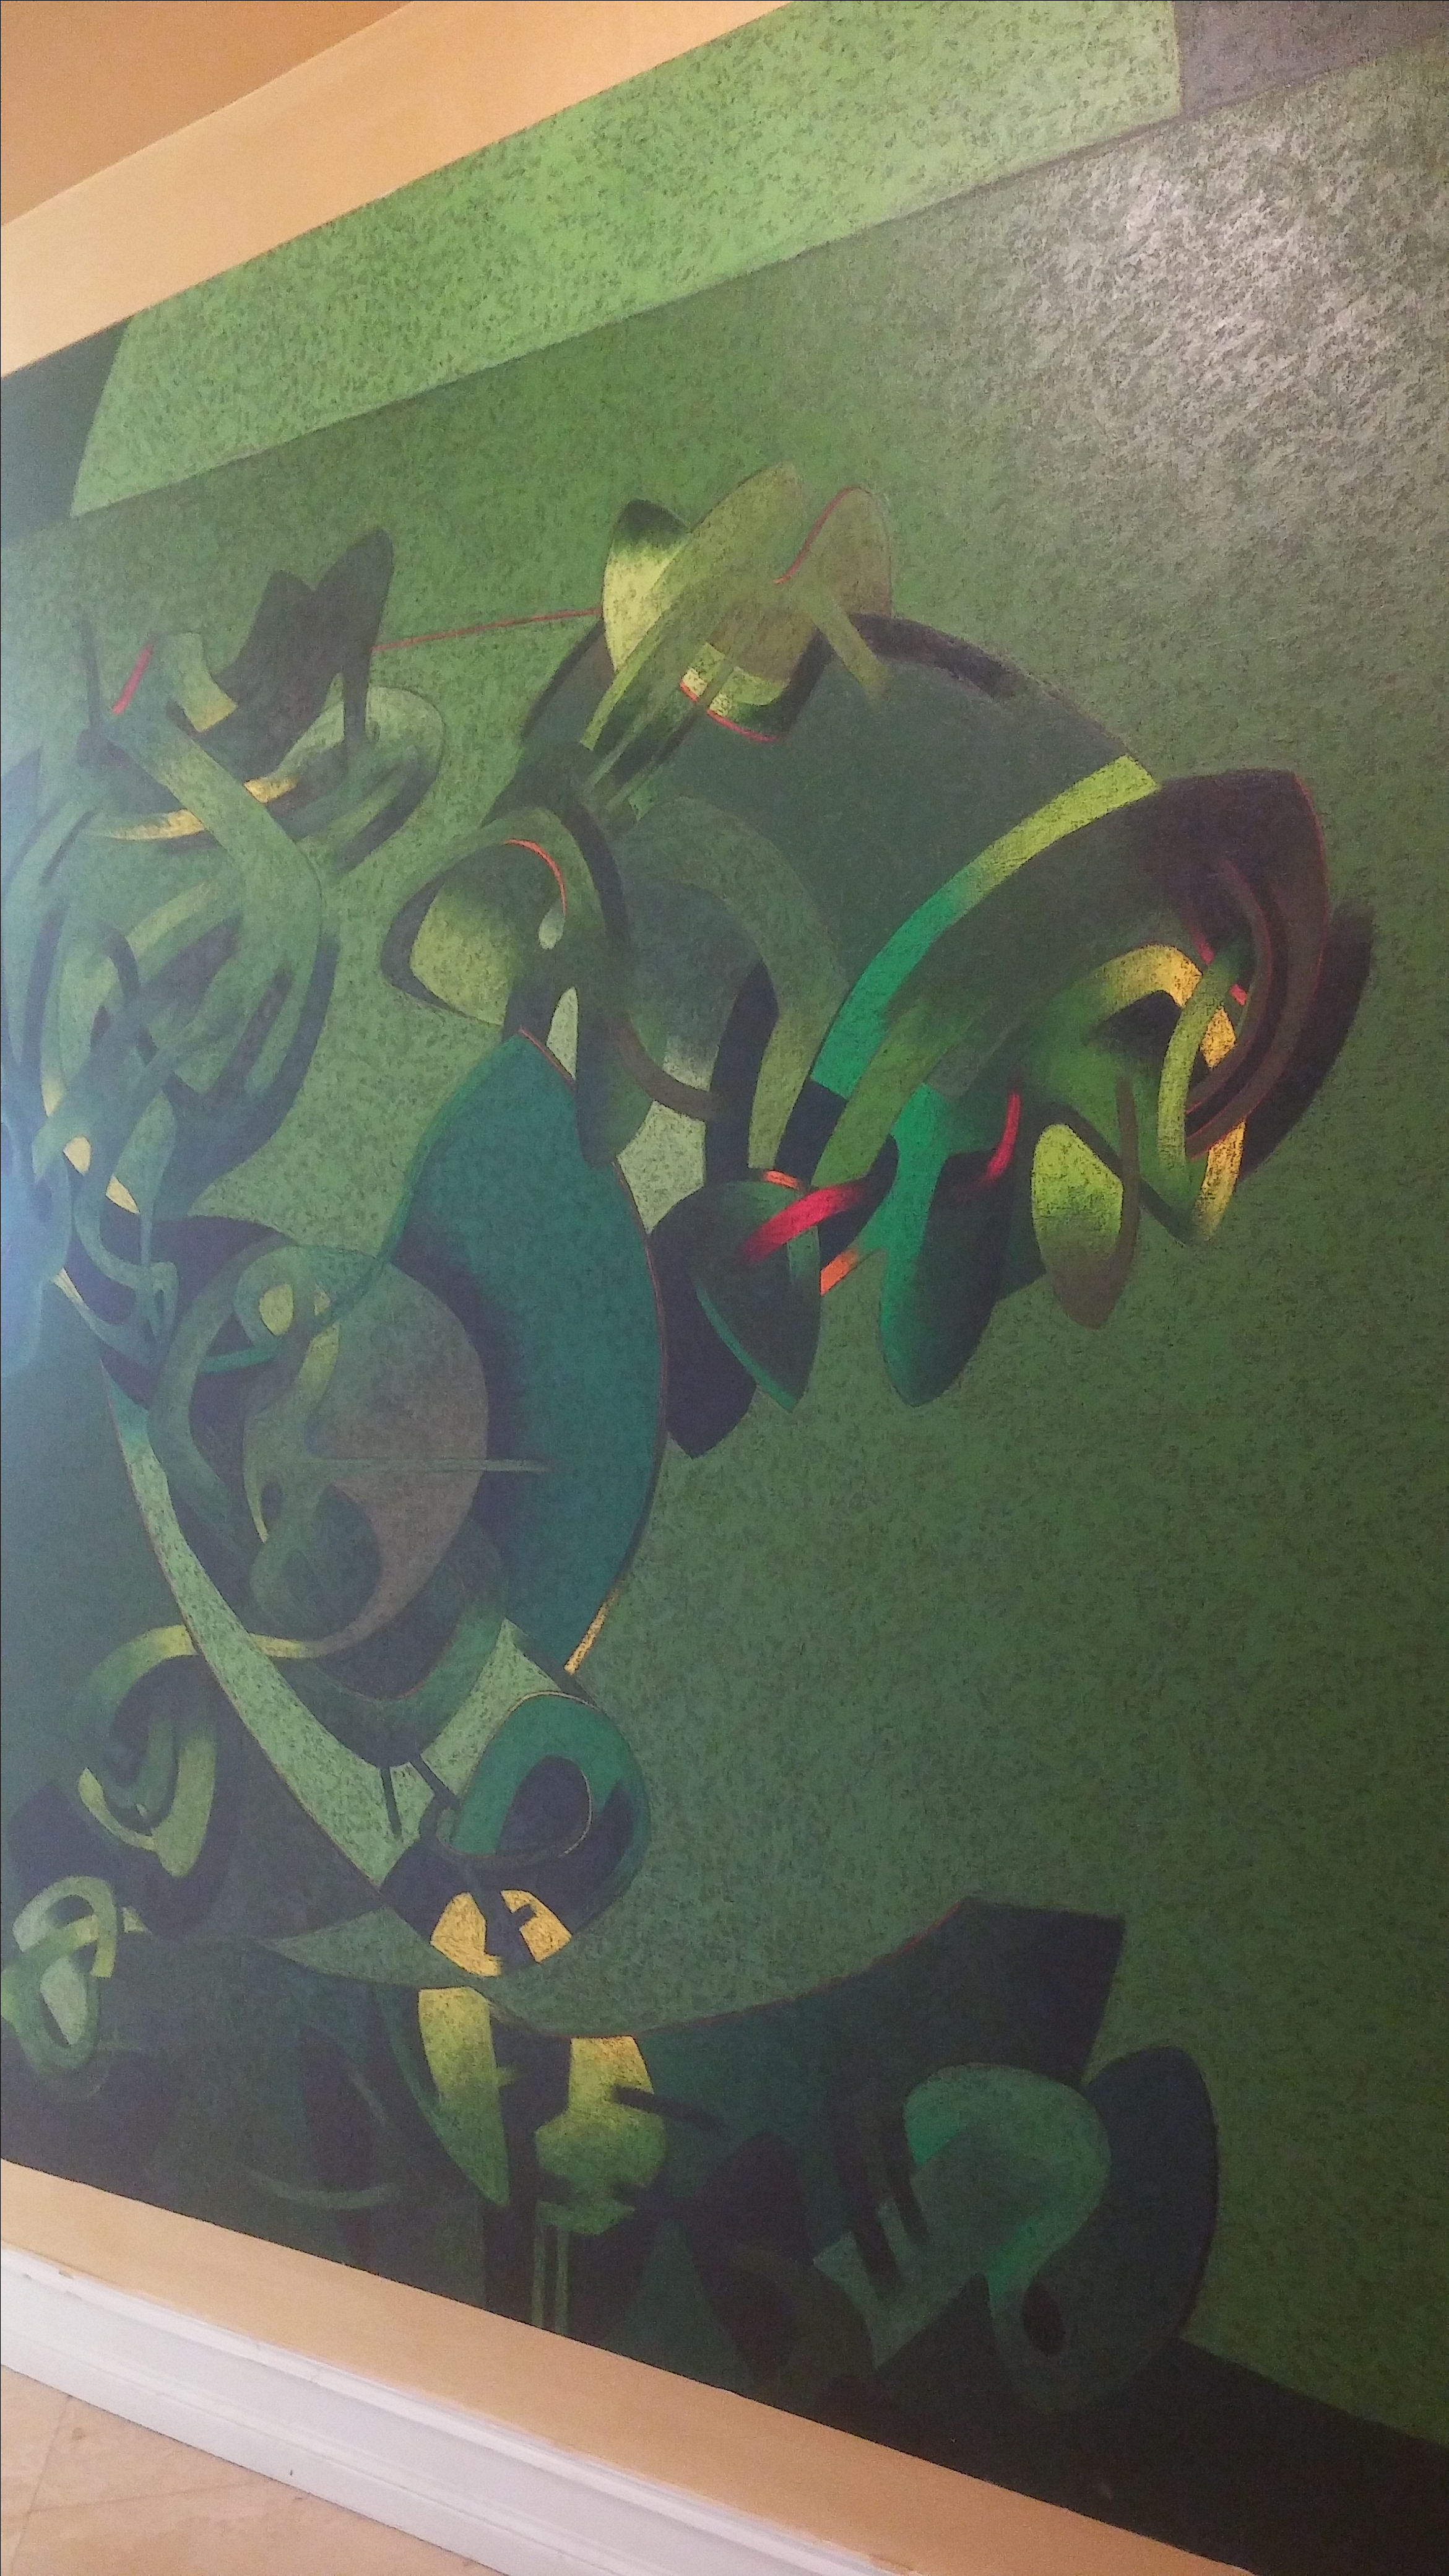 Milton Estrella Gavidia Monumental Verde Abstract Painting